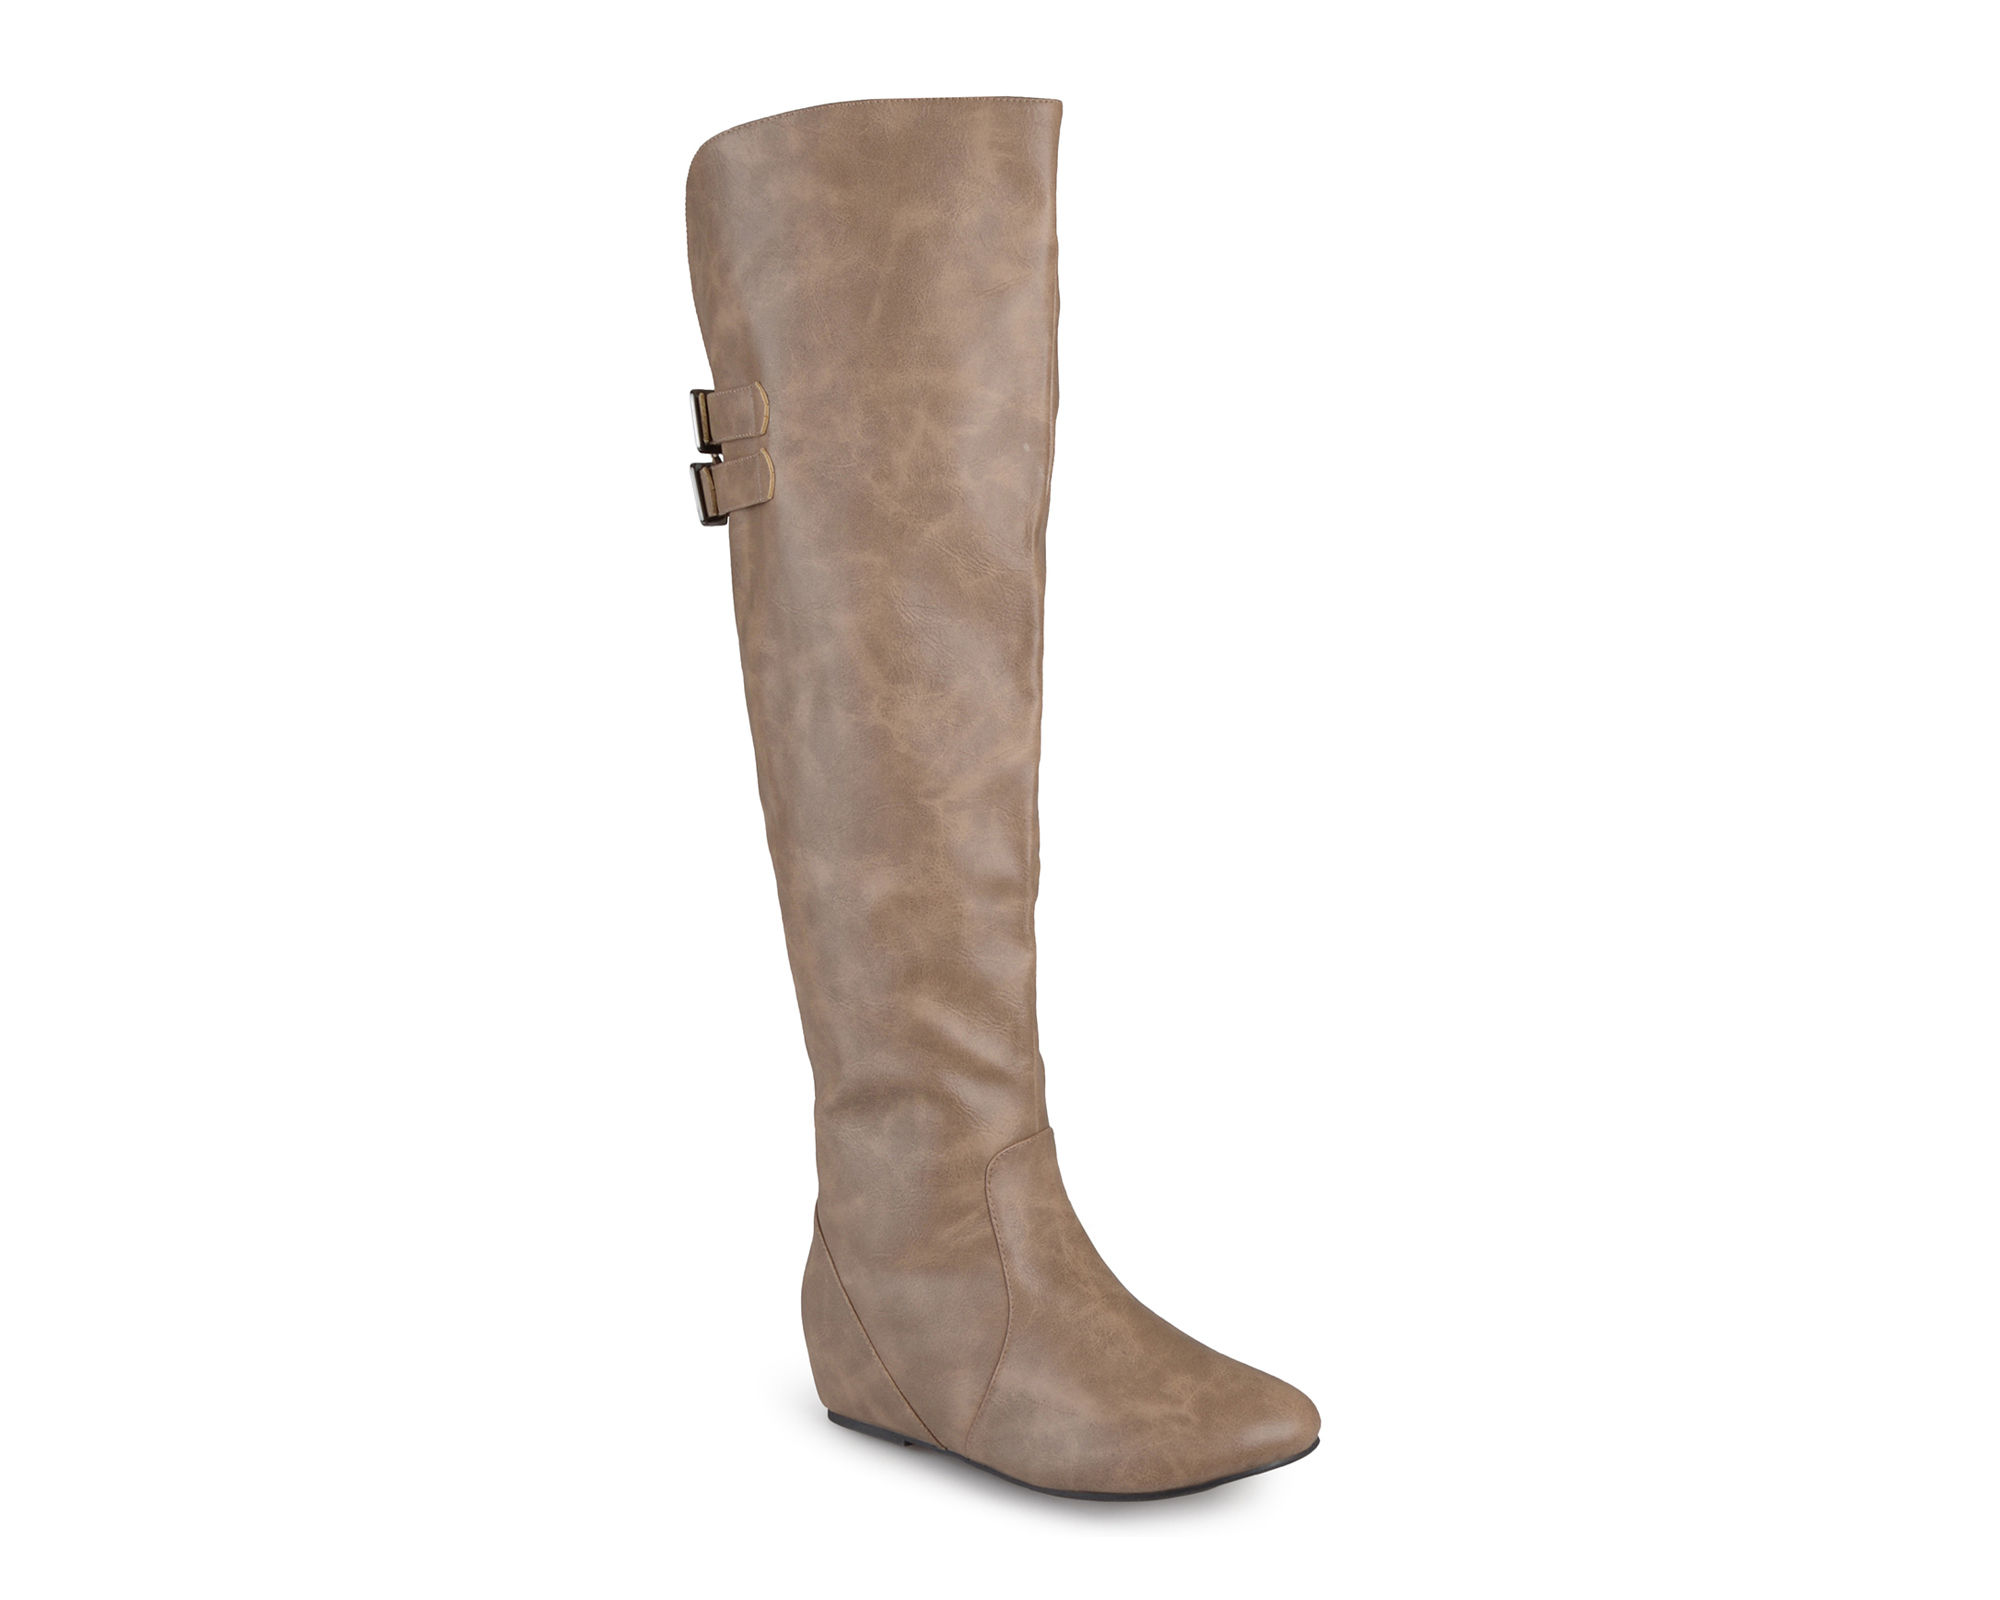 Journee Collection Angel Over-the-Knee Riding Boots-Wide Calf